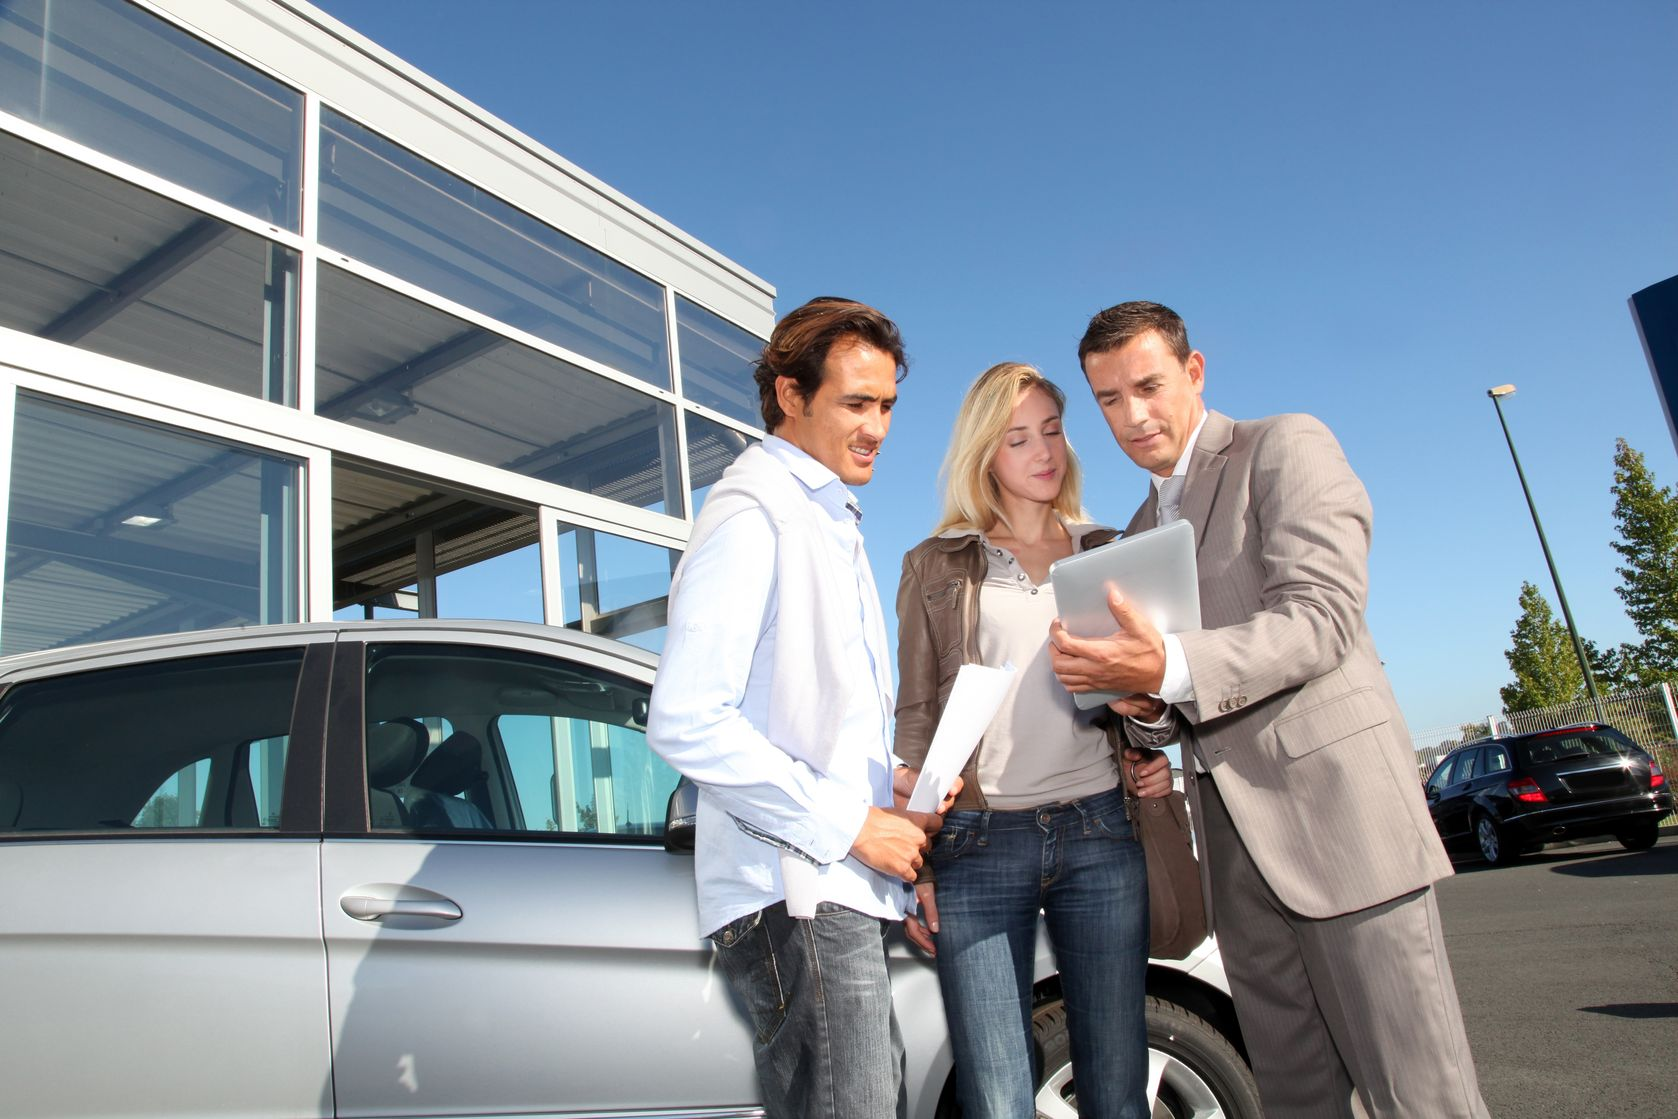 Denver, Wheat Ridge, CO. Auto Dealers Insurance